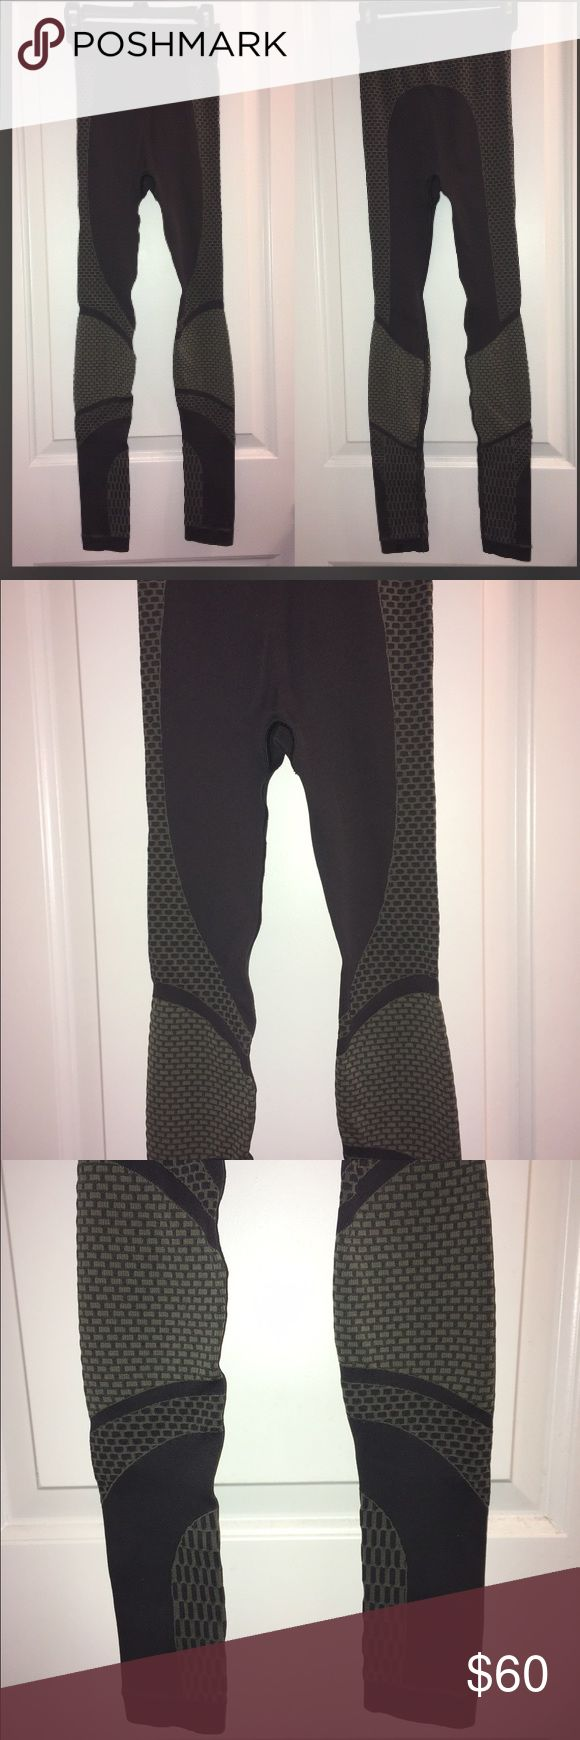 Lululemon Charcoal leggings Authentic Lululemon leggings. Excellent condition no flaws. High Waisted but can be comfortably folded over. Moto style I guess you could call them. Love the detailing on these but they no longer fit me! Size 2 but tag is ripped off. Very firm on the price. lululemon athletica Pants Leggings